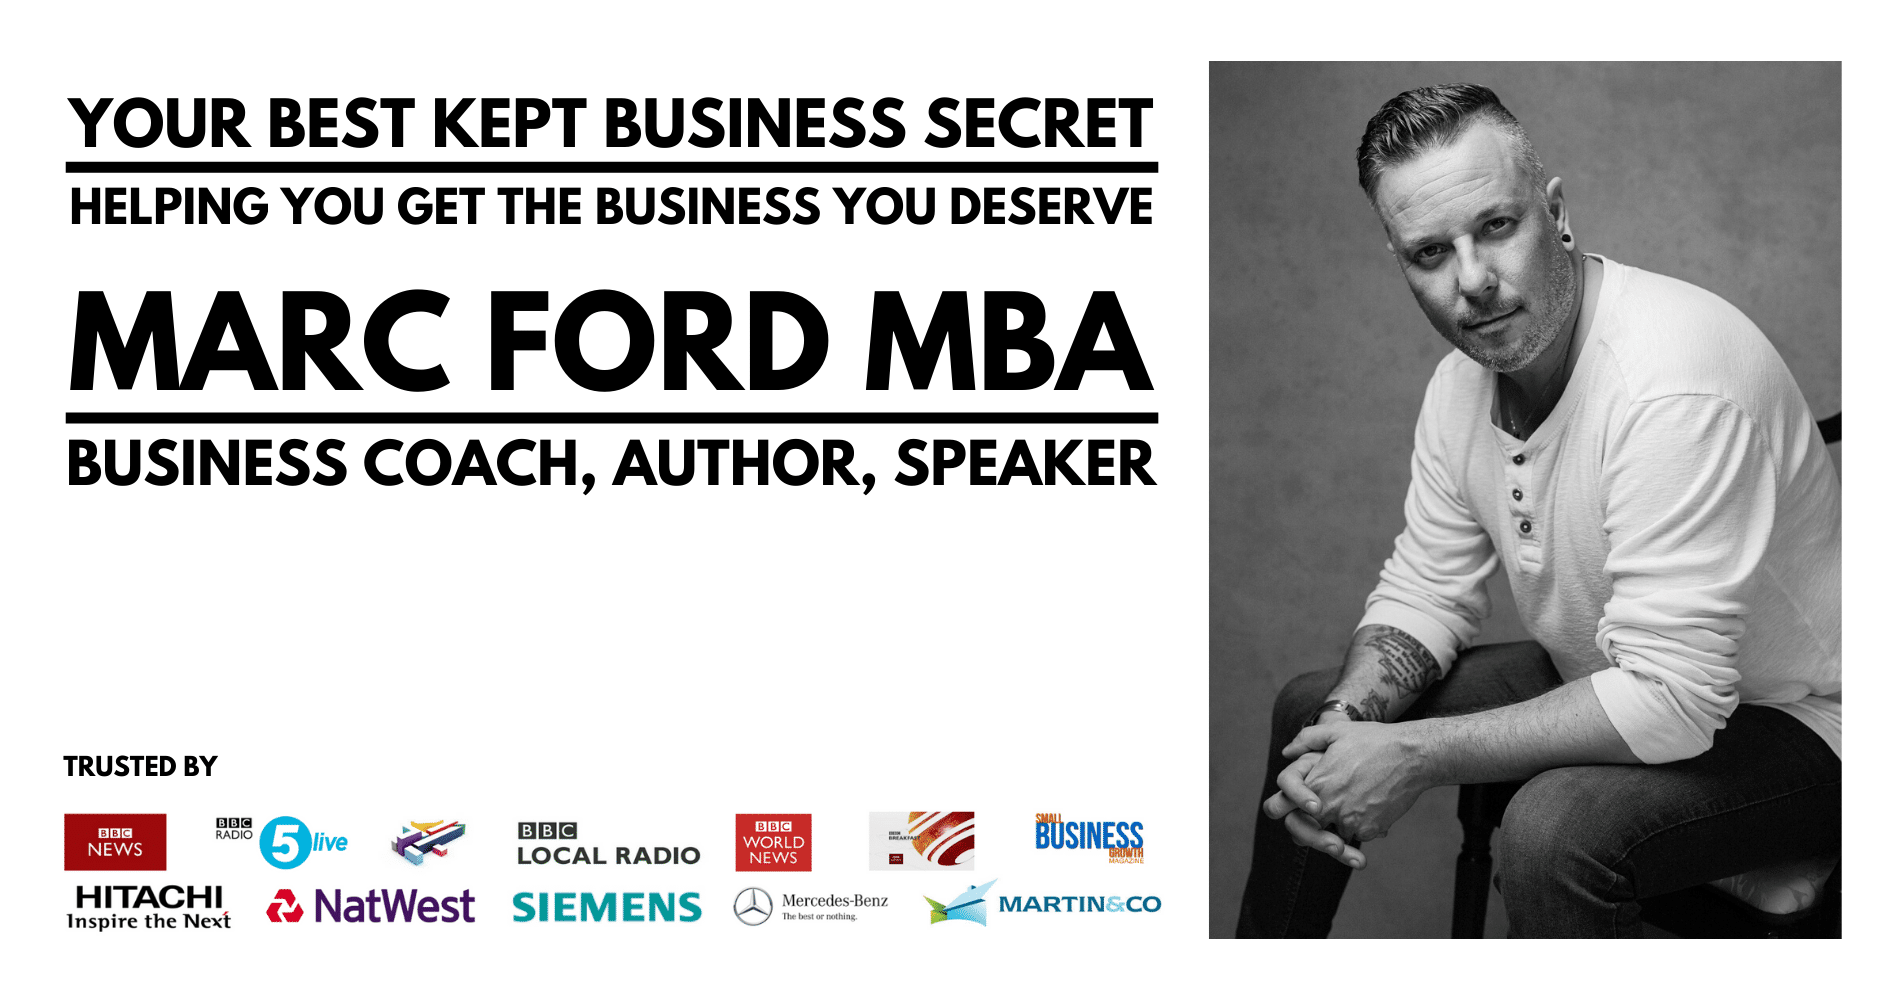 Marc Ford MBA business coach in leicester and Leicestershire, East Midlands. Your Best Kept Business Secret